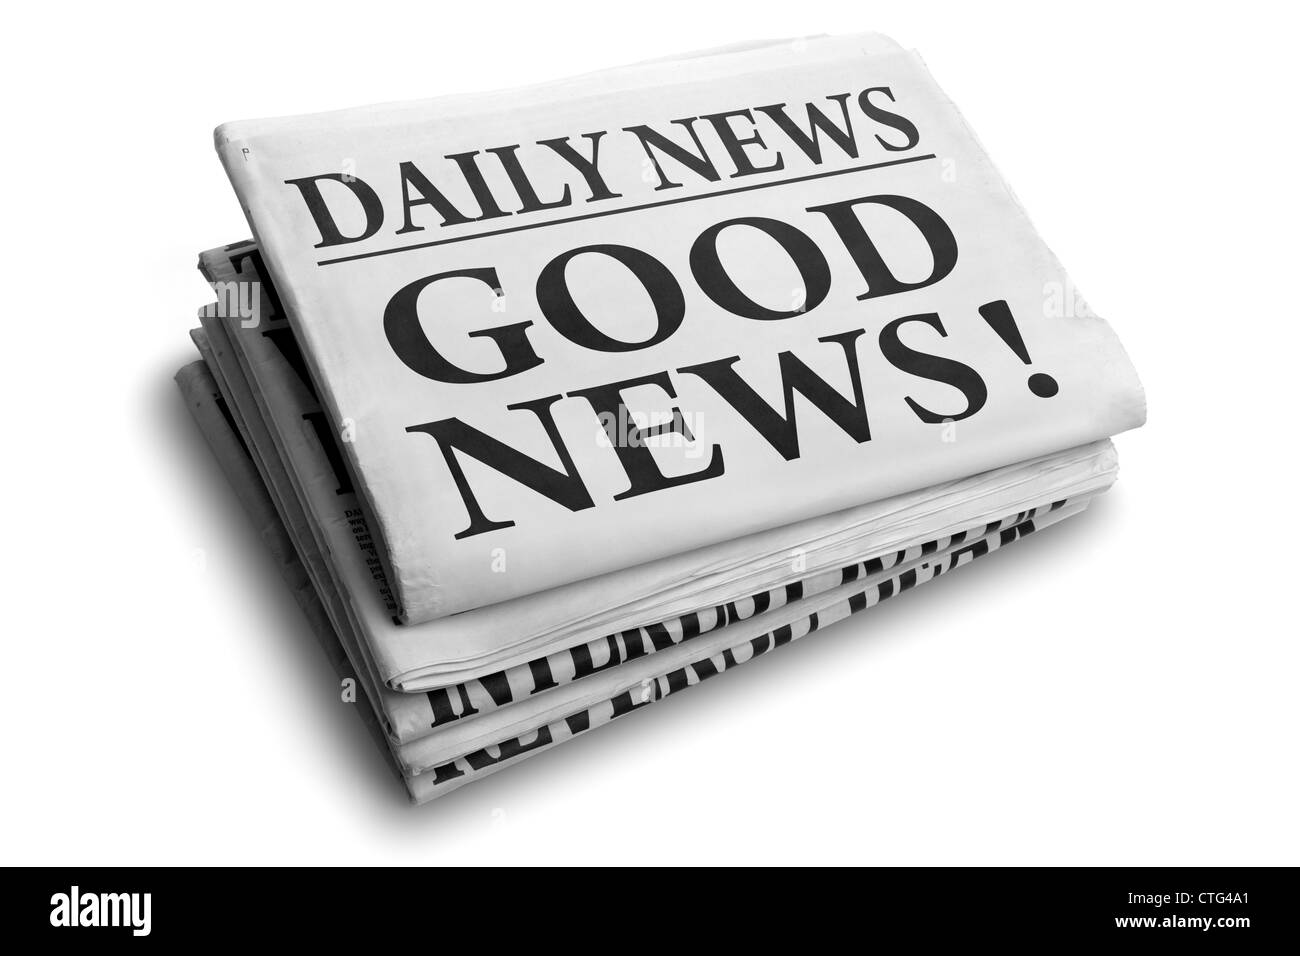 Good news daily newspaper headline - Stock Image